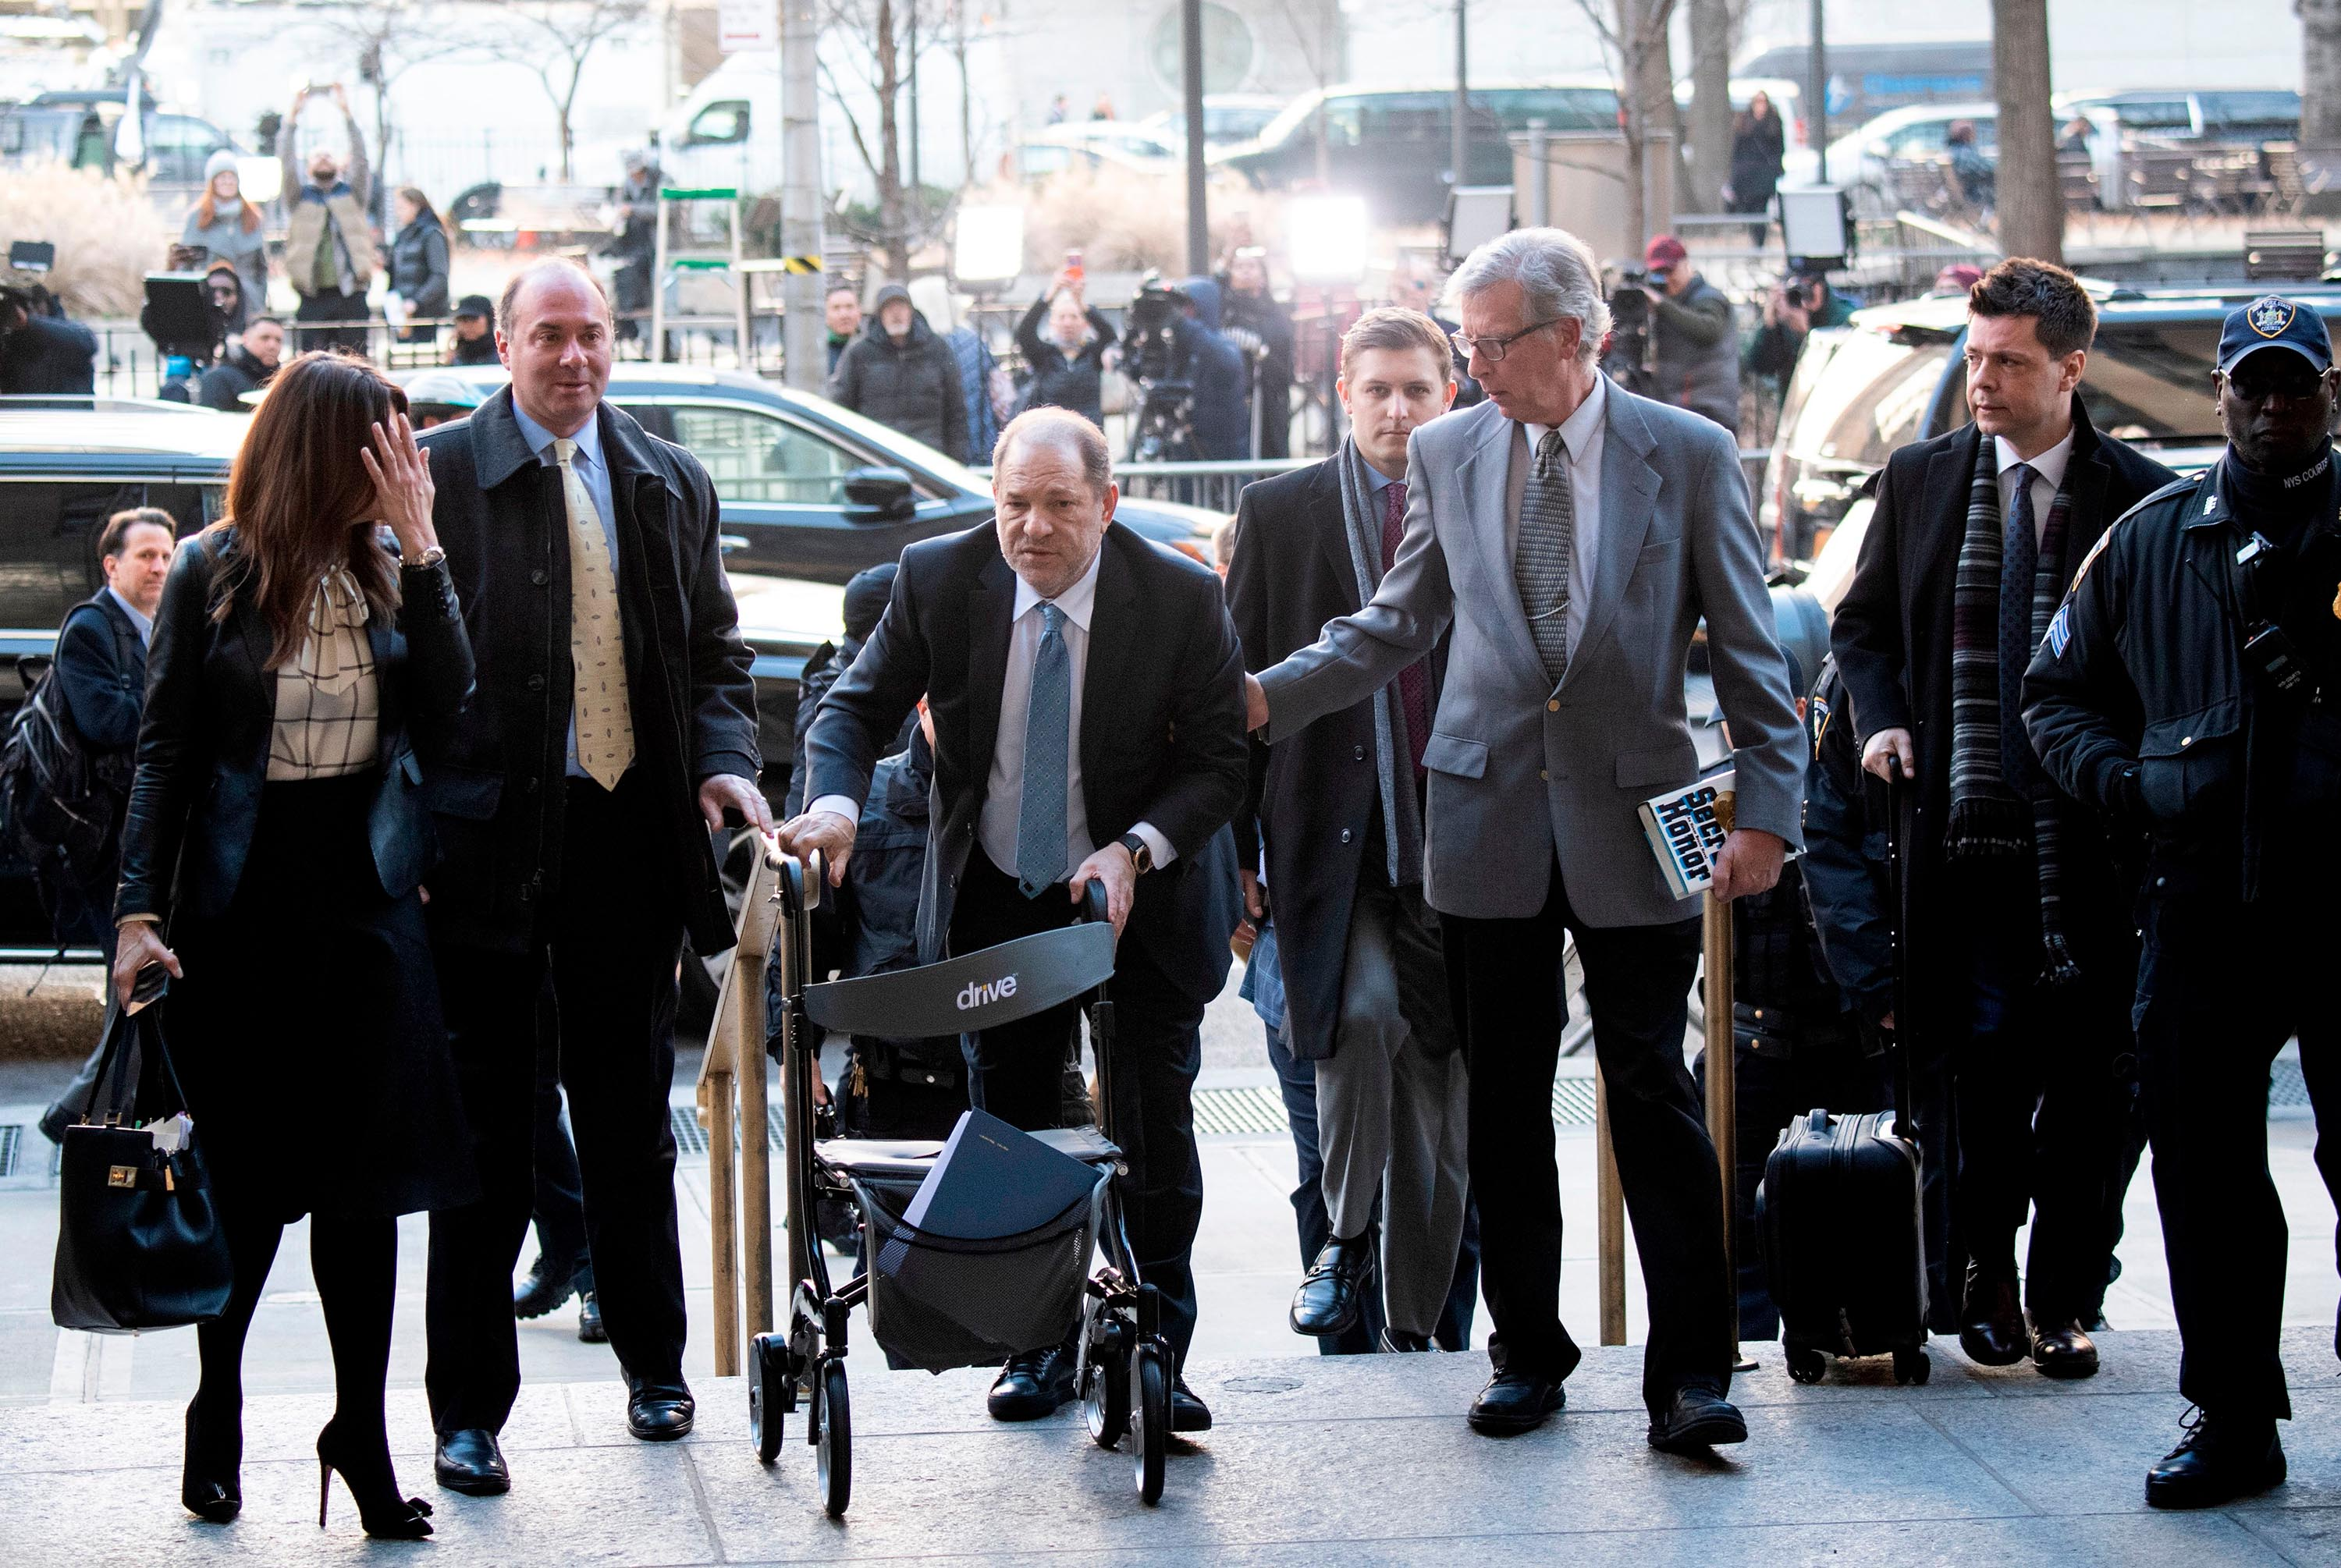 Harvey Weinstein arrives with his legal team at the Manhattan Criminal Court, on February 24, 2020in New York City.